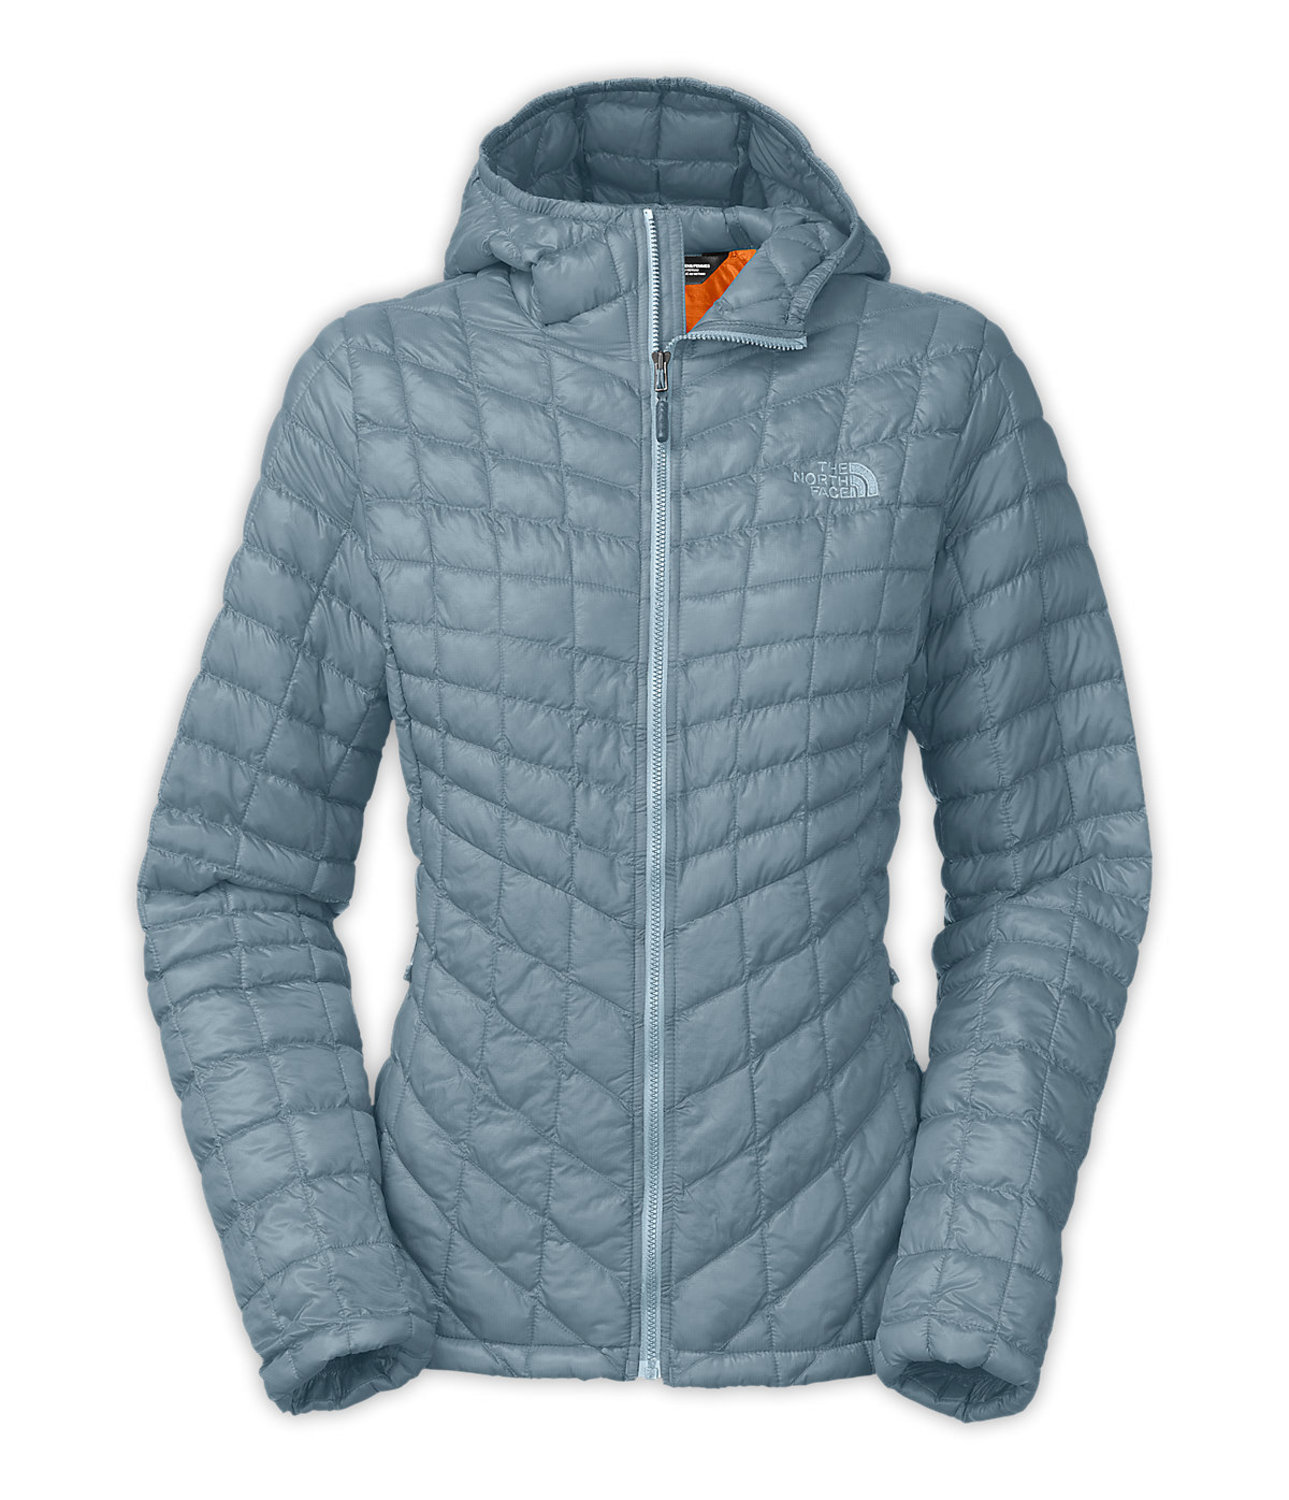 a107c969afe2 The North Face Women s Thermoball Hoodie